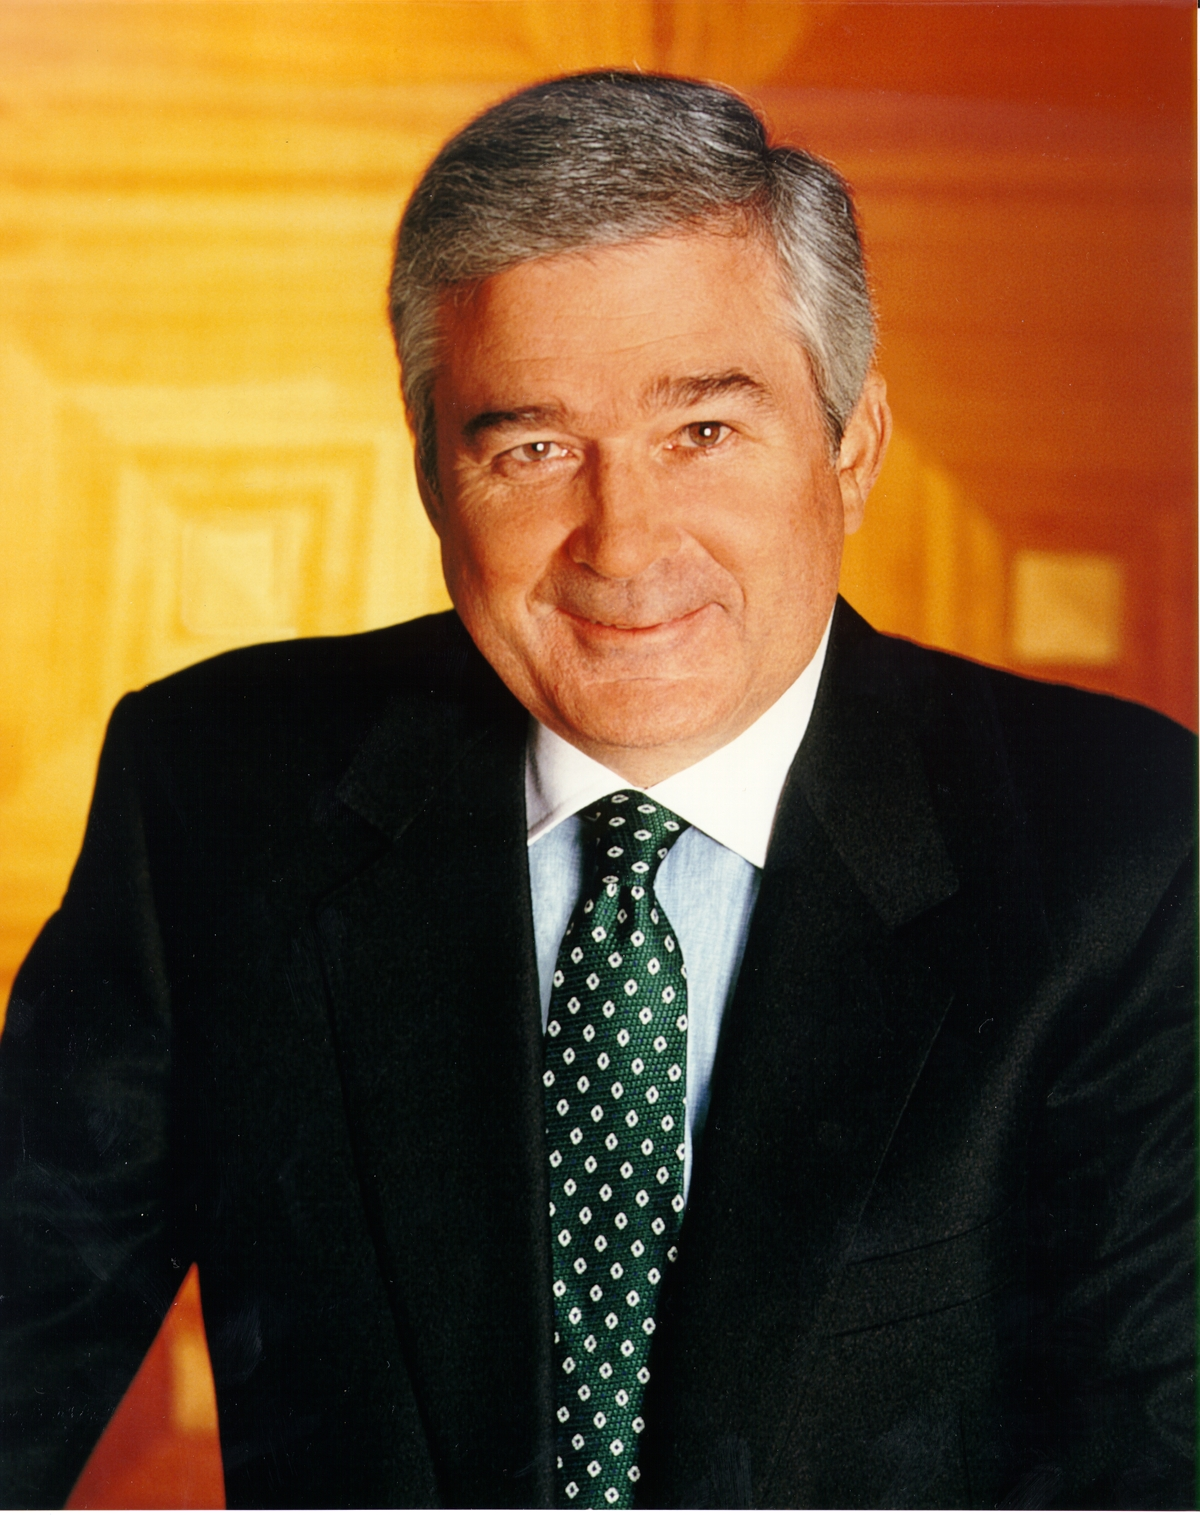 Former IBM CEO and Chairman Louis Gerstner.